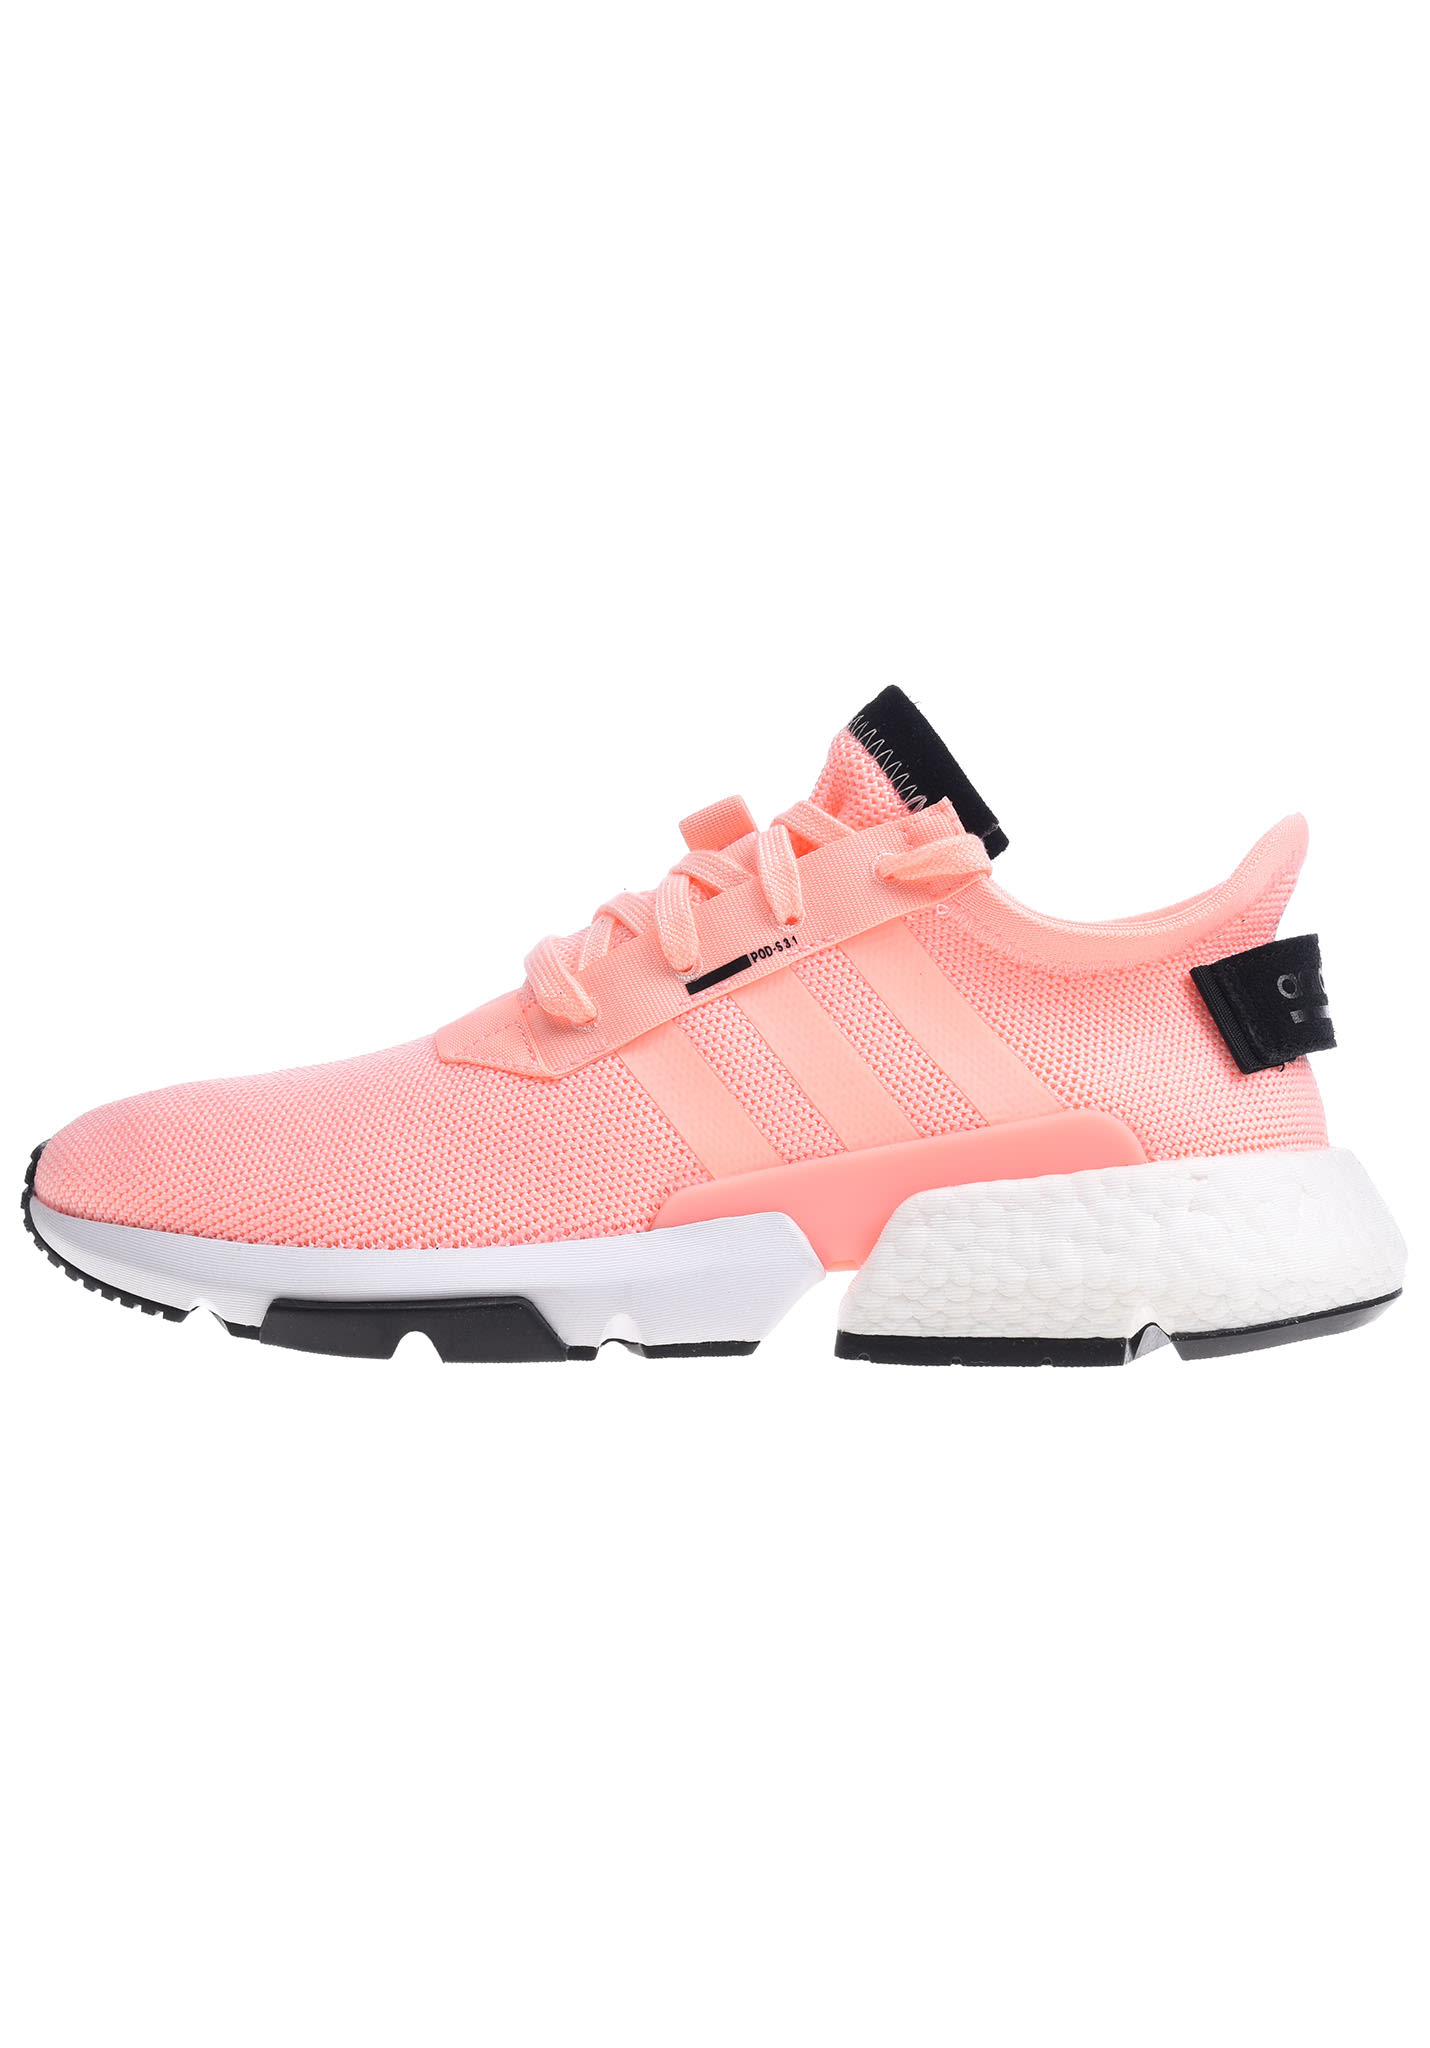 a9006c163f784d ADIDAS ORIGINALS POD-S3.1 - Sneakers for Men - Pink - Planet Sports